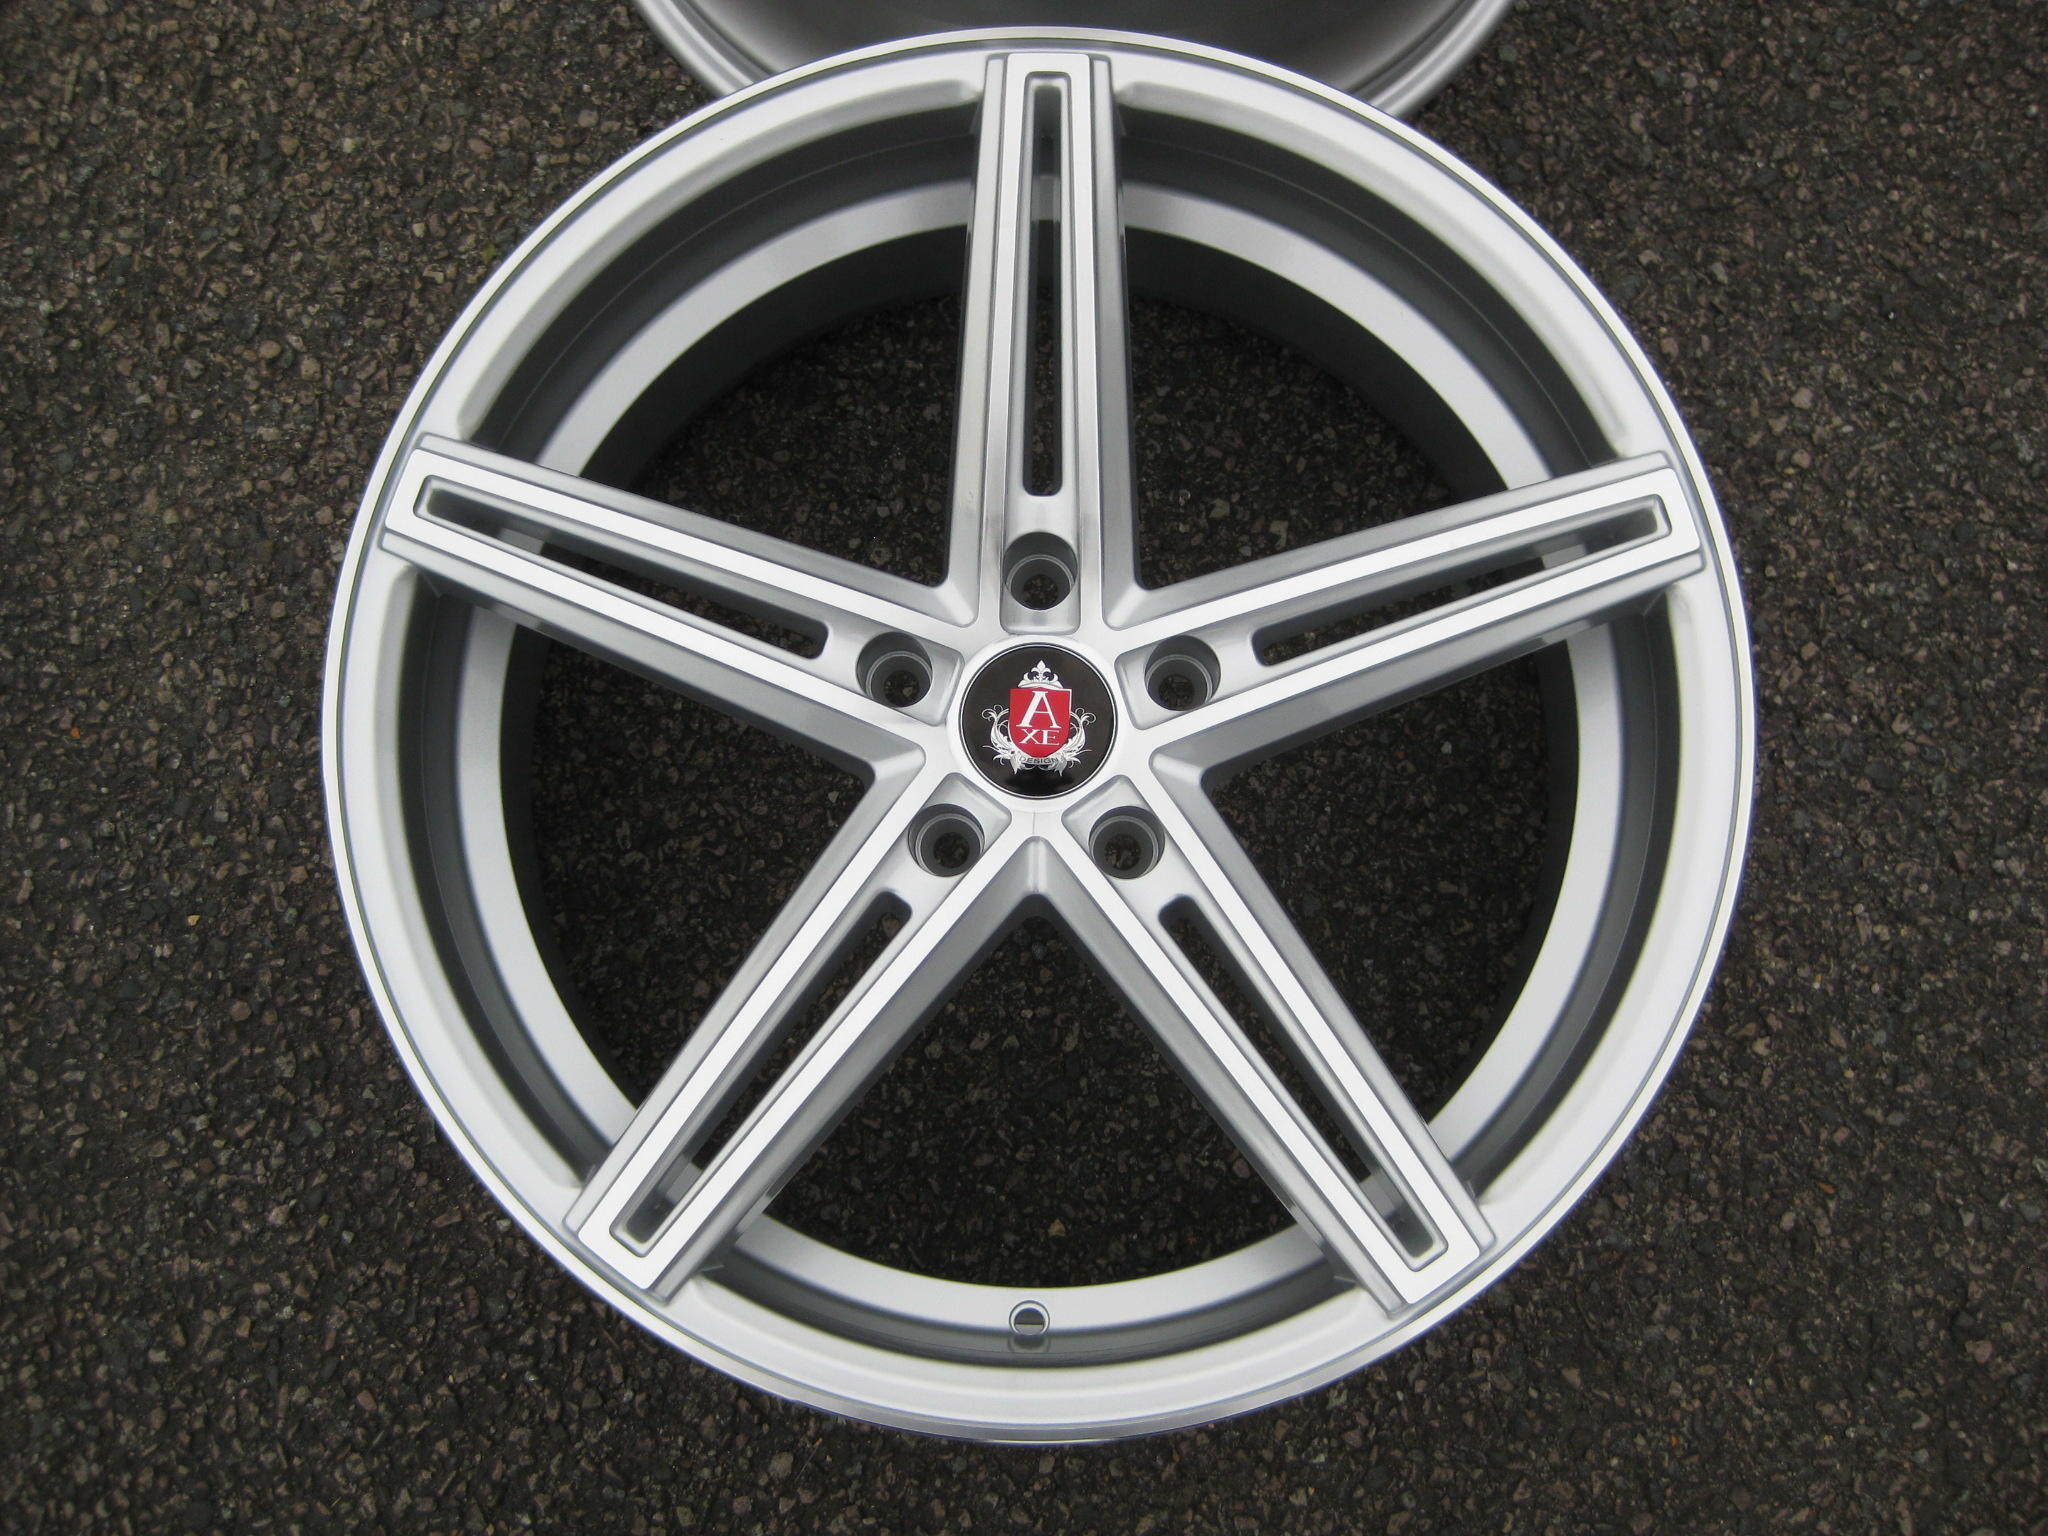 "NEW 20"" AXE EX14 DEEP CONCAVE ALLOYS IN SILVER WITH POLISHED FACE AND LIP, WIDER 10.5"" REARS et40/42"